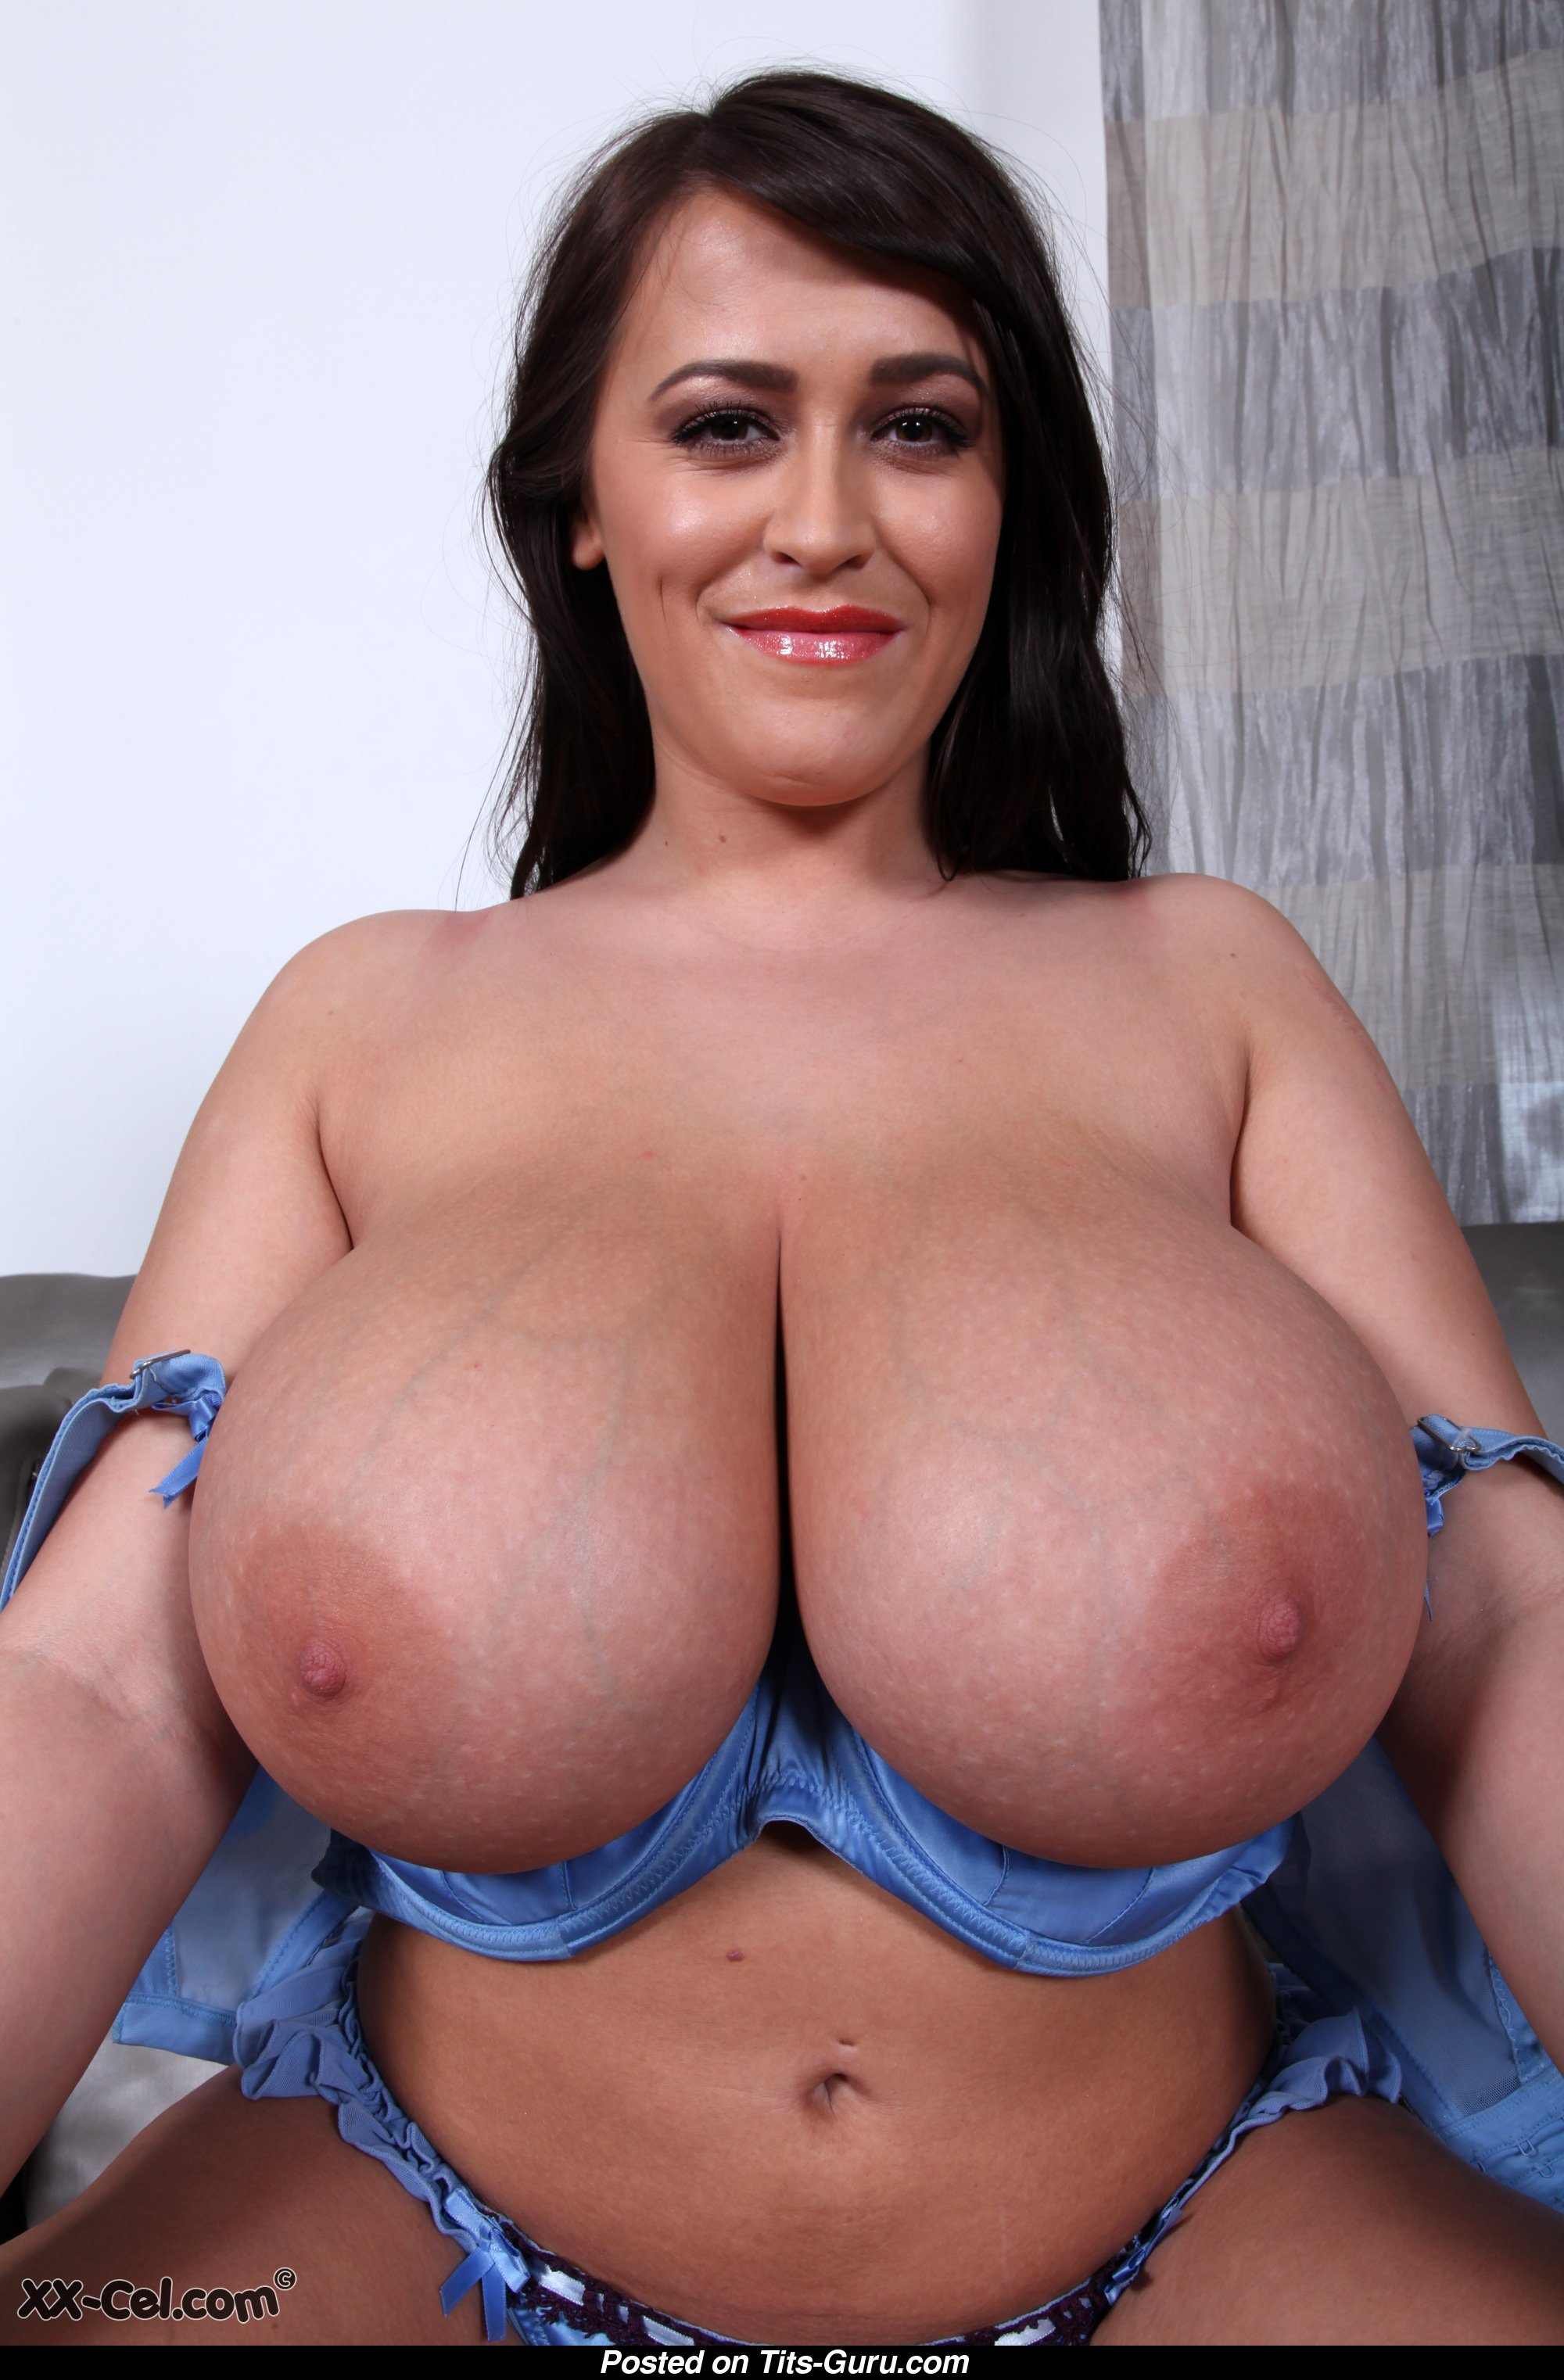 All became boob bra flashed nipples puss tit vag remarkable